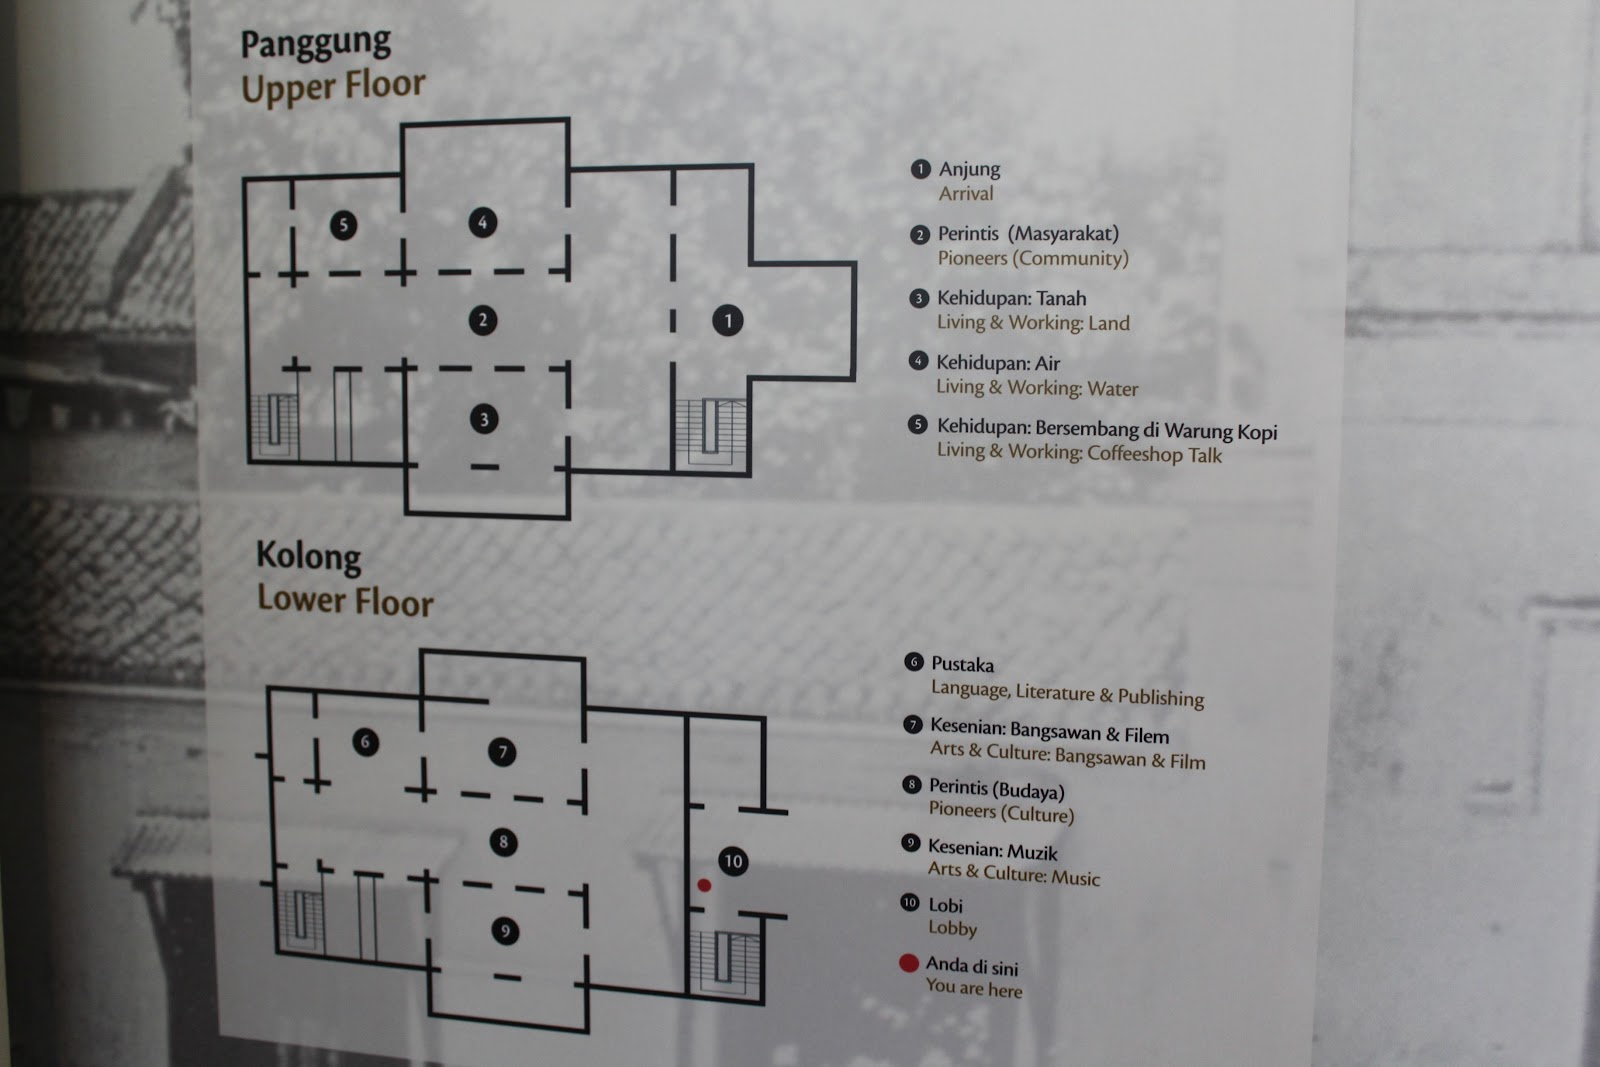 A mapped layout of the main building